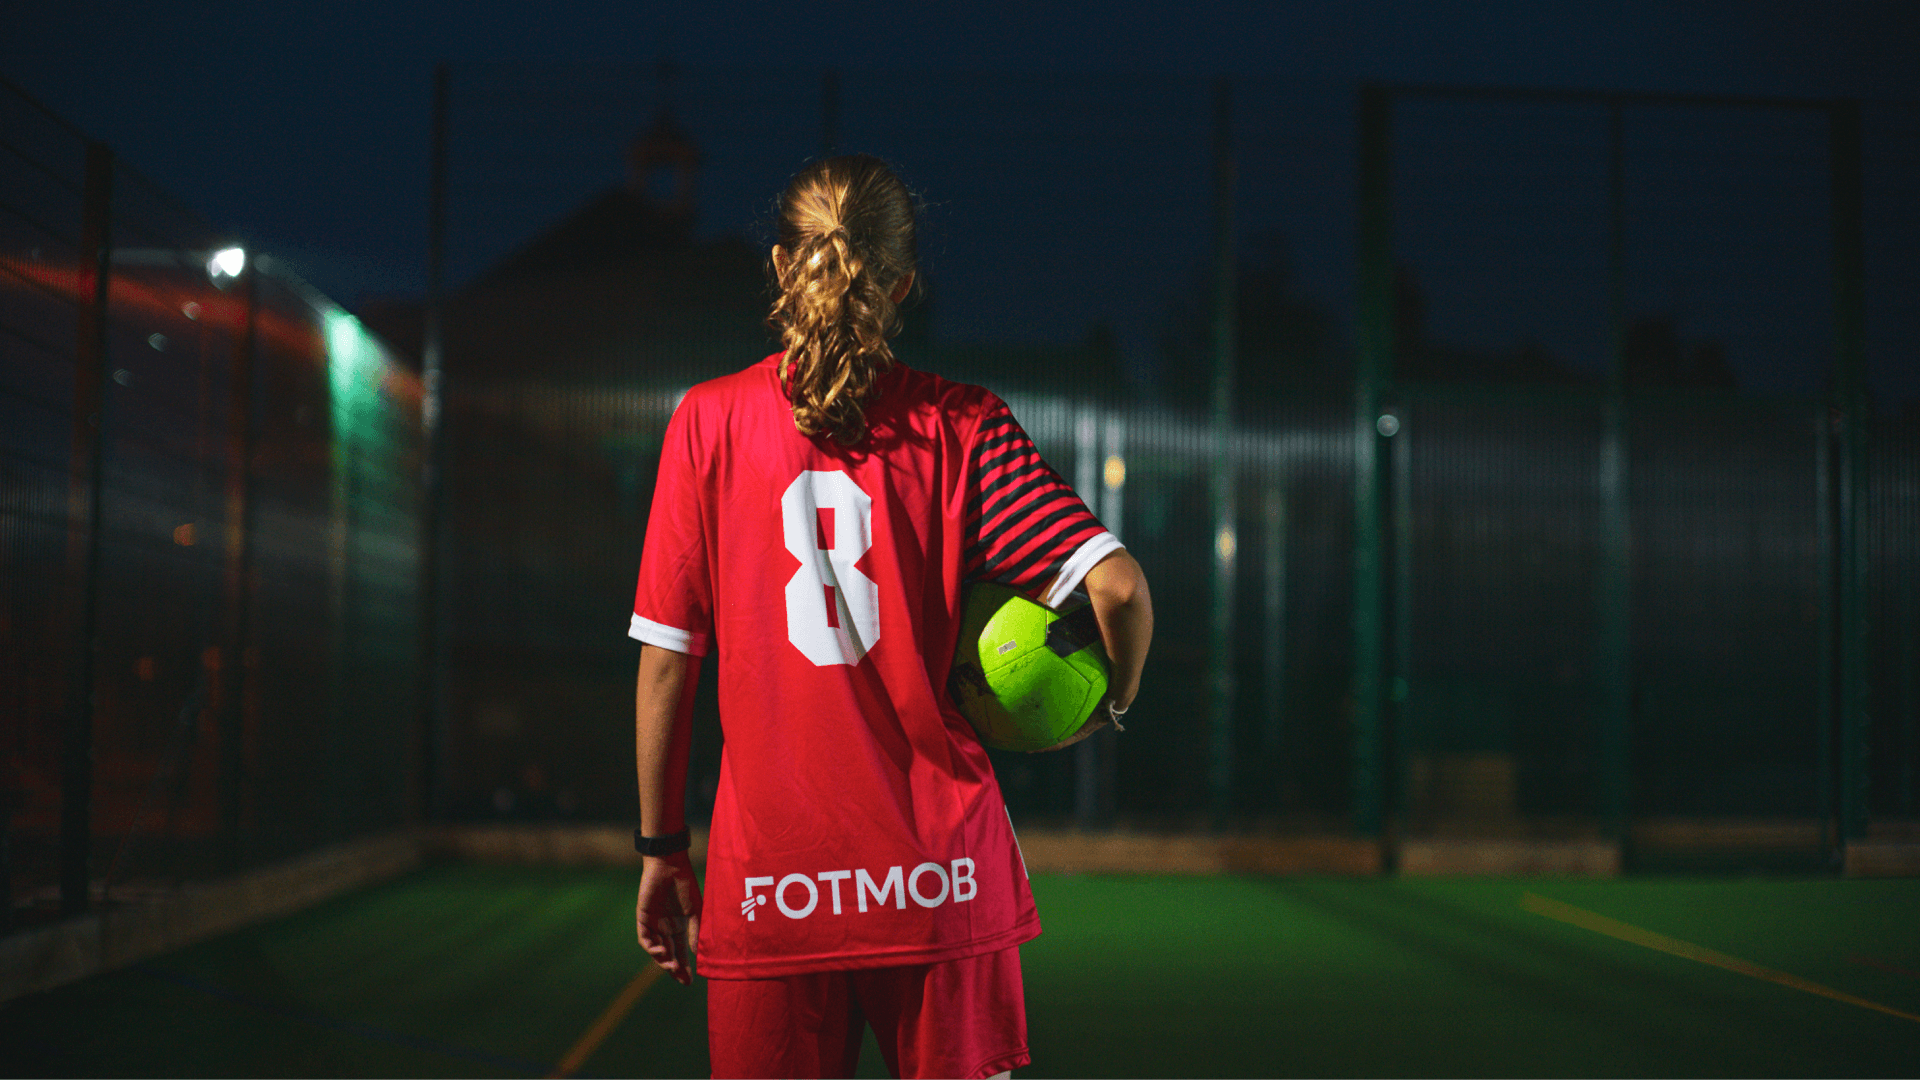 FotMob teams up with Girls United to support the growth of women's football